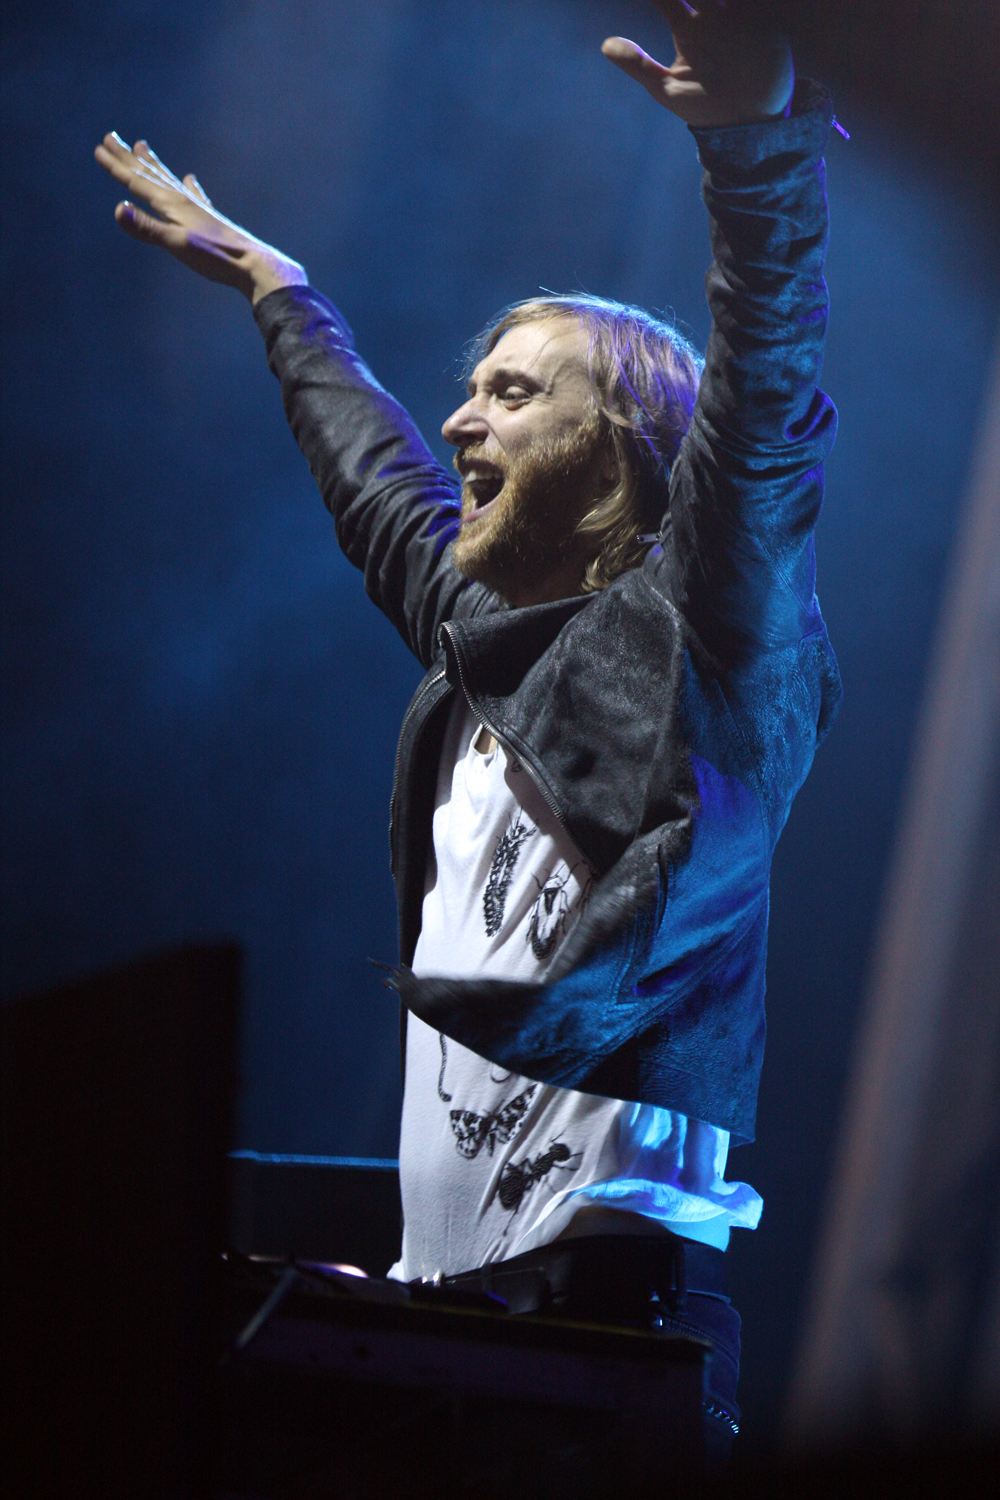 David Guetta discography - Wikipedia, the free encyclopedia